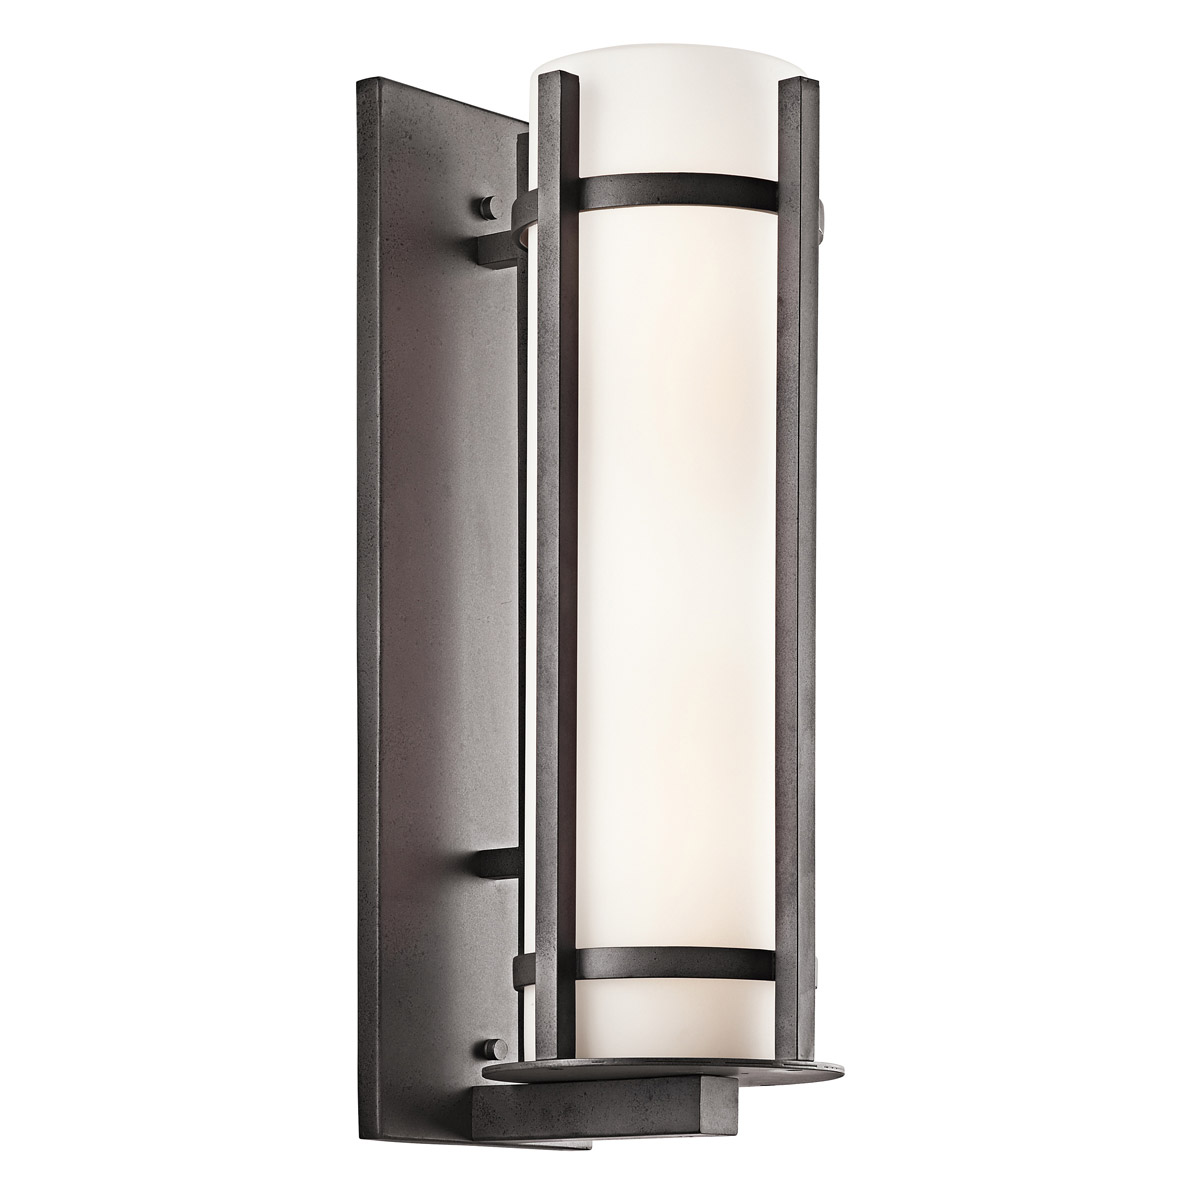 Wall Sconces Kichler : Kichler 49121AVI Camden Outdoor Wall Sconce